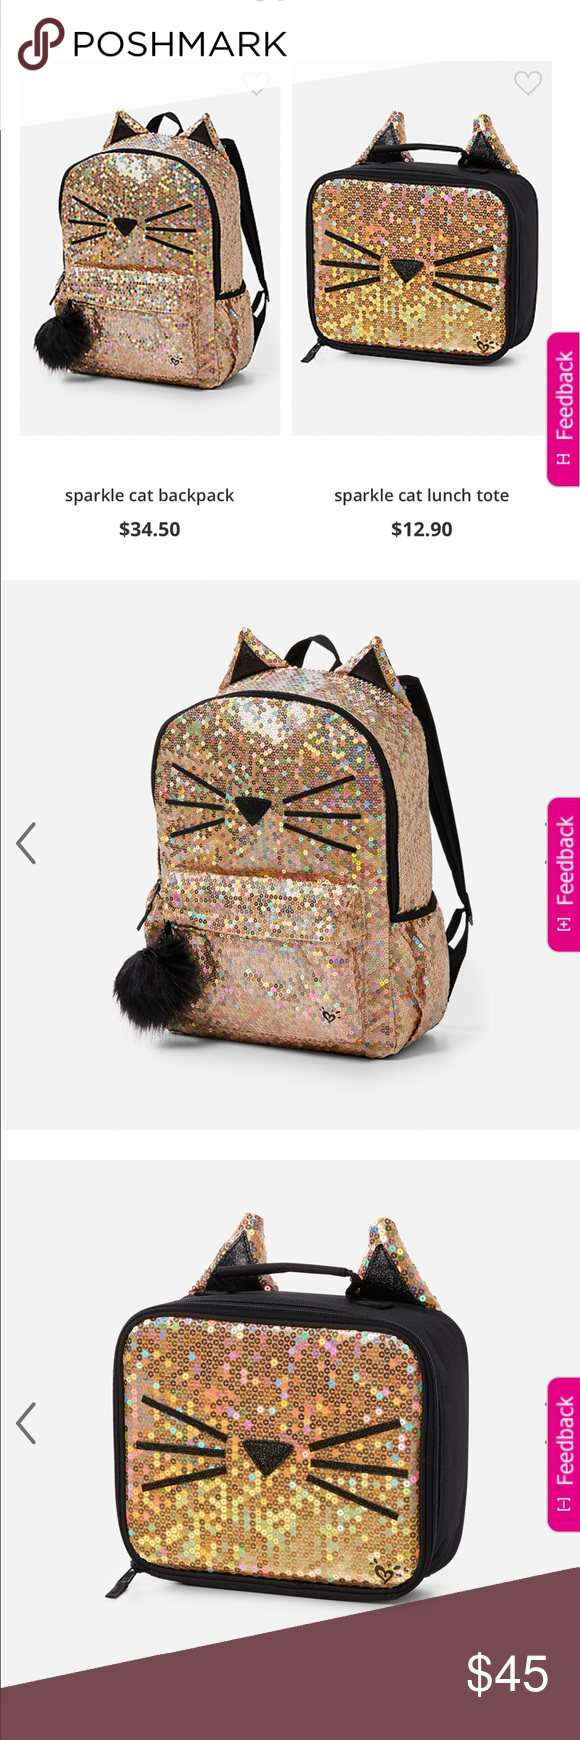 Nwt Justice Book Bag And Lunch Brand New Sparkle Gold Cat With Ears Box Ships Same Day Accessories Bags